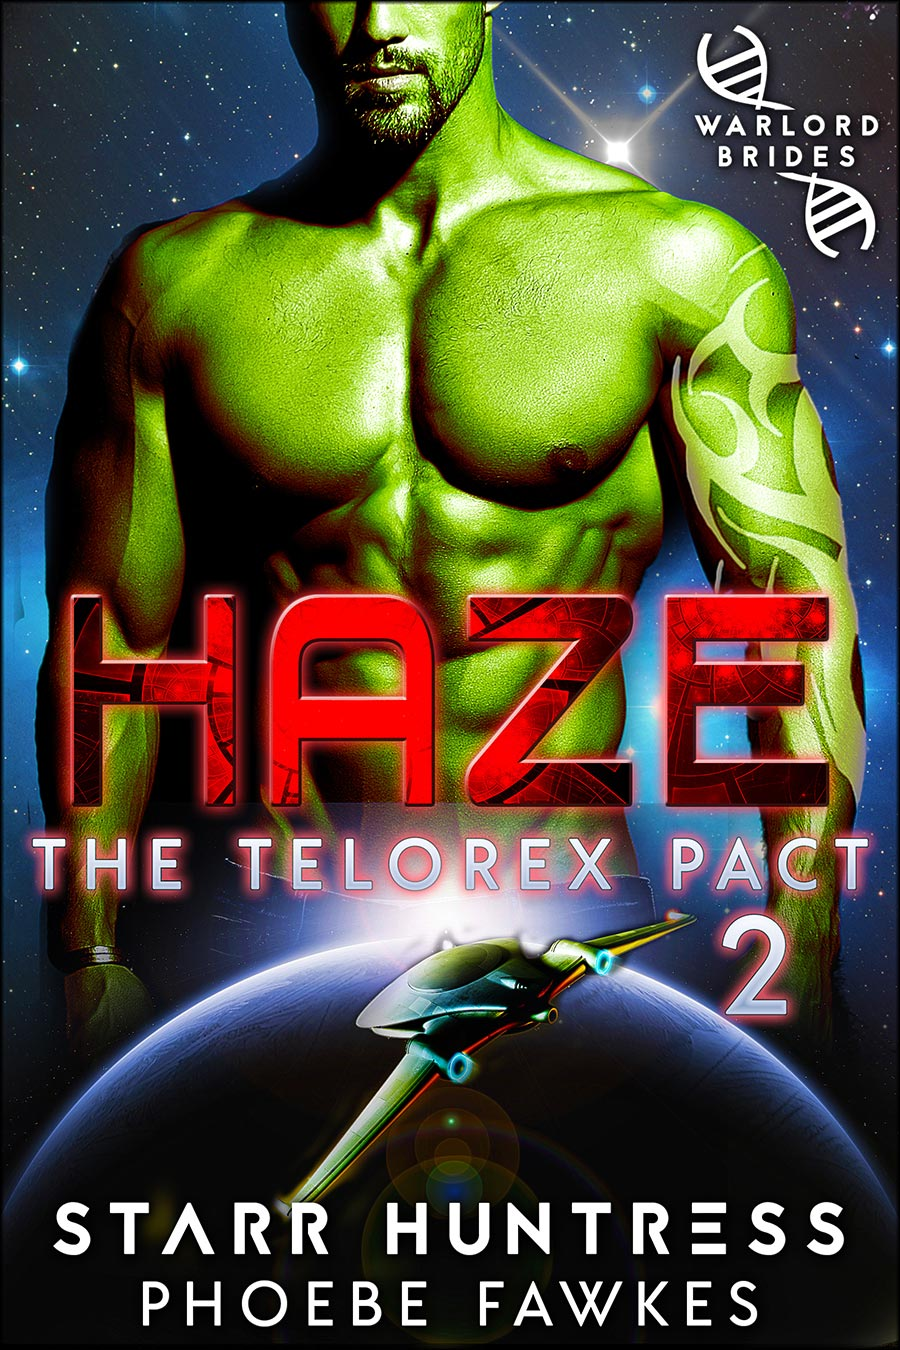 The-Telorex-Pact---book-2---HAZE.jpg